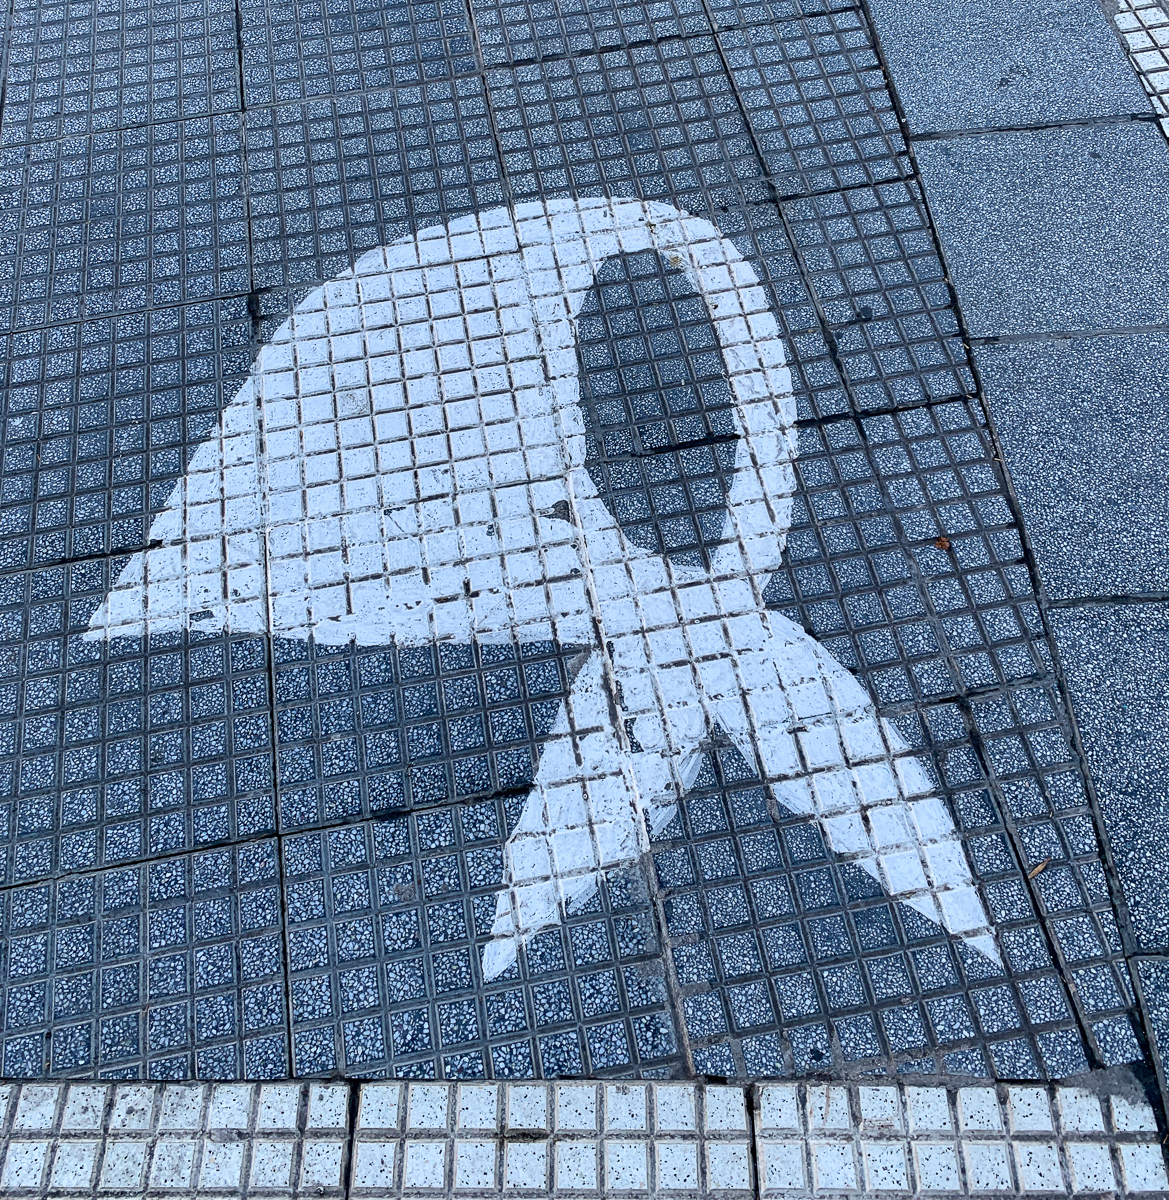 Symbol of Mothers of Plaza de Mayo